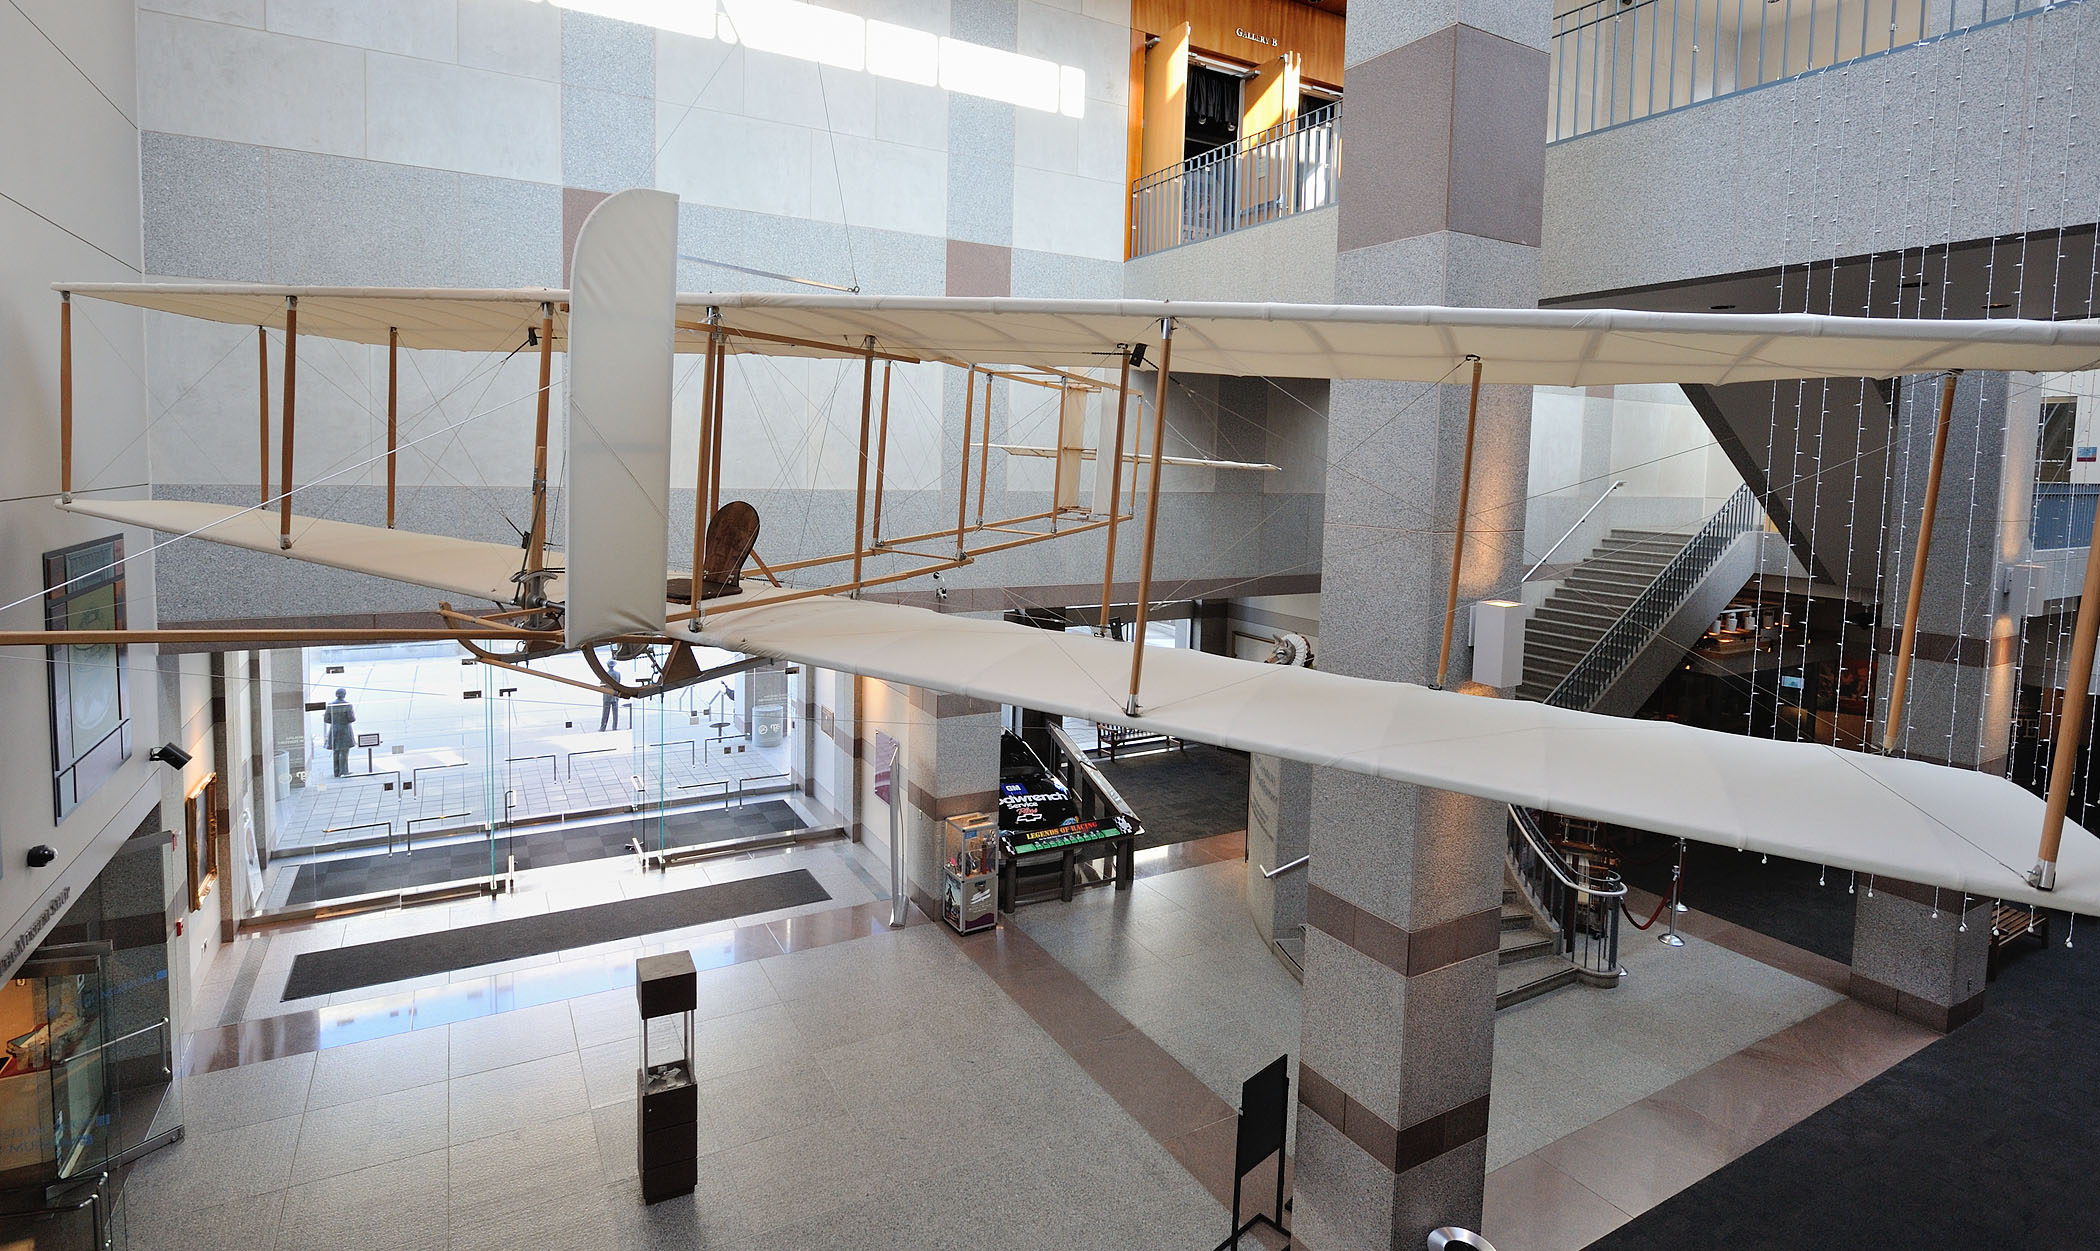 Visitors are welcomed to the museum by this replica of the Wright Brother's Glider, along with other exhibits in the museum lobby.